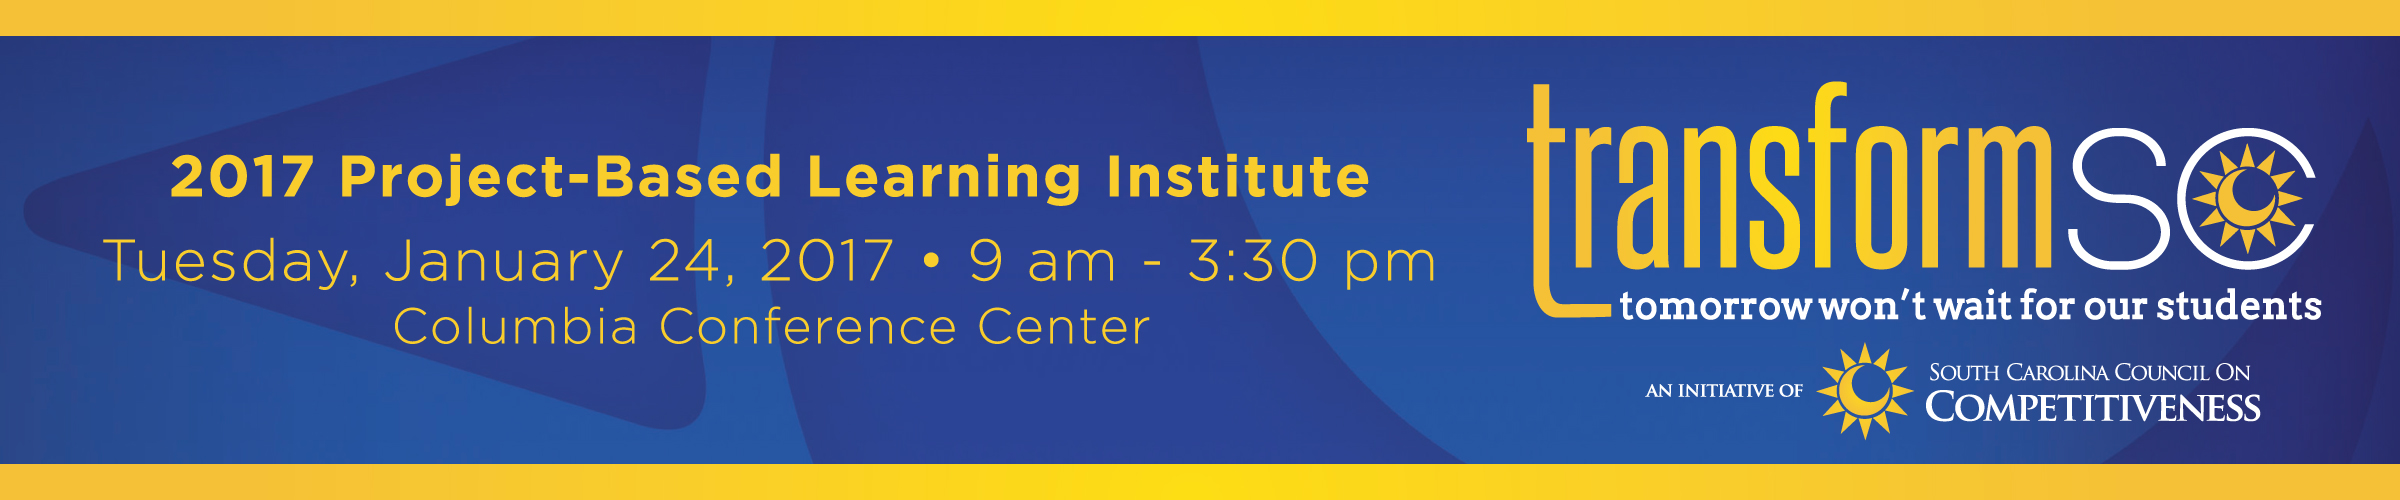 Project-Based Learning Institute